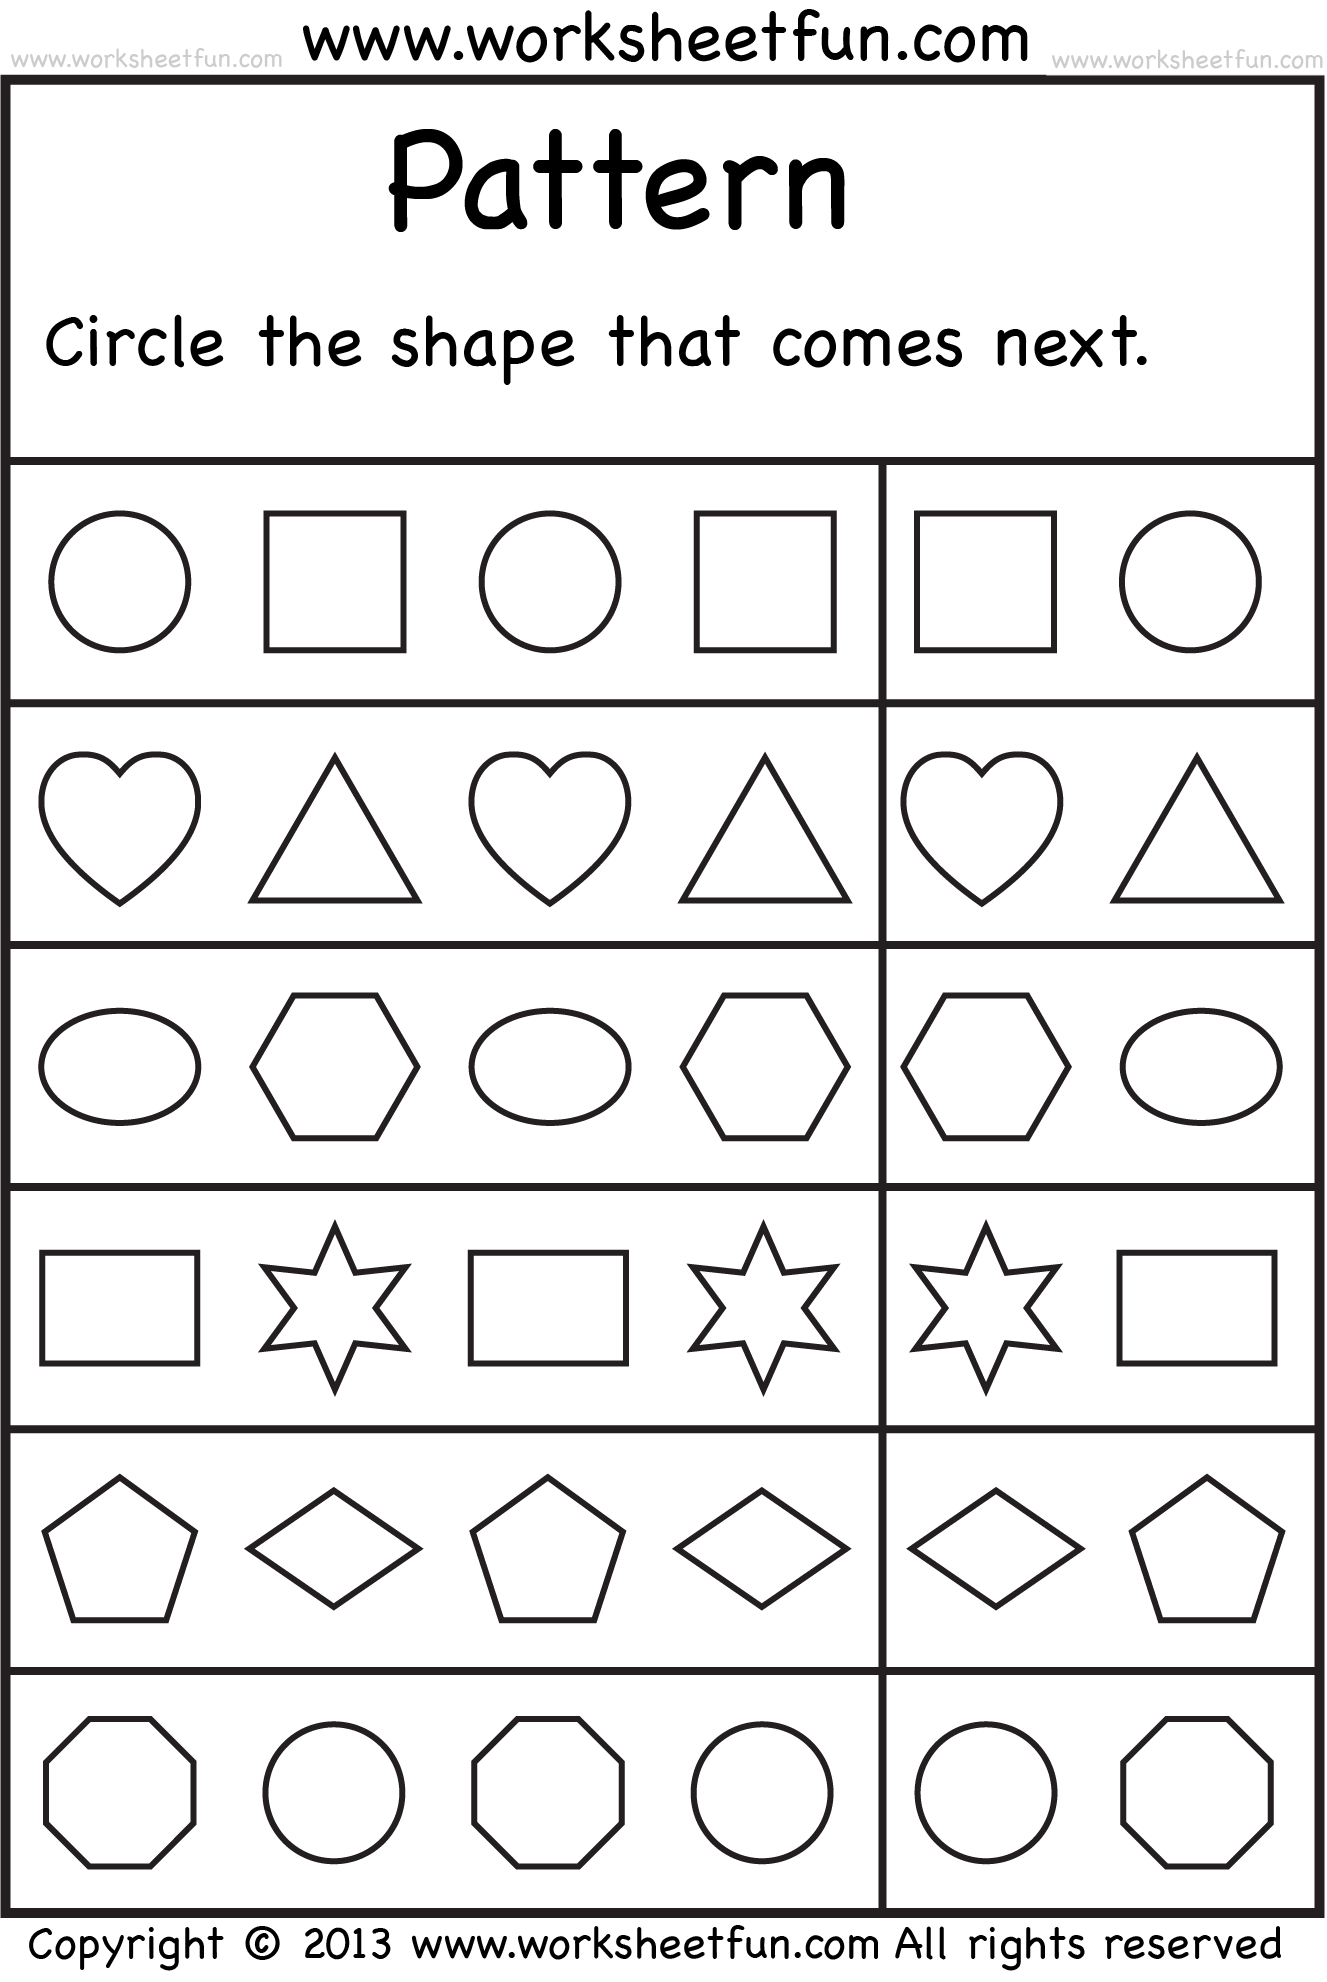 Weirdmailus  Marvellous  Images About School Worksheets On Pinterest  Number Words  With Glamorous  Images About School Worksheets On Pinterest  Number Words Alphabet Worksheets And Free Printable Kindergarten Worksheets With Cool Math Worksheets For Kindergarten Addition Also Helping Verb Worksheet In Addition Geometry Parallel And Perpendicular Lines Worksheet And Algebra  Worksheets For Th Grade As Well As Area And Circumference Of A Circle Worksheets Additionally Radical Operations Worksheet From Pinterestcom With Weirdmailus  Glamorous  Images About School Worksheets On Pinterest  Number Words  With Cool  Images About School Worksheets On Pinterest  Number Words Alphabet Worksheets And Free Printable Kindergarten Worksheets And Marvellous Math Worksheets For Kindergarten Addition Also Helping Verb Worksheet In Addition Geometry Parallel And Perpendicular Lines Worksheet From Pinterestcom